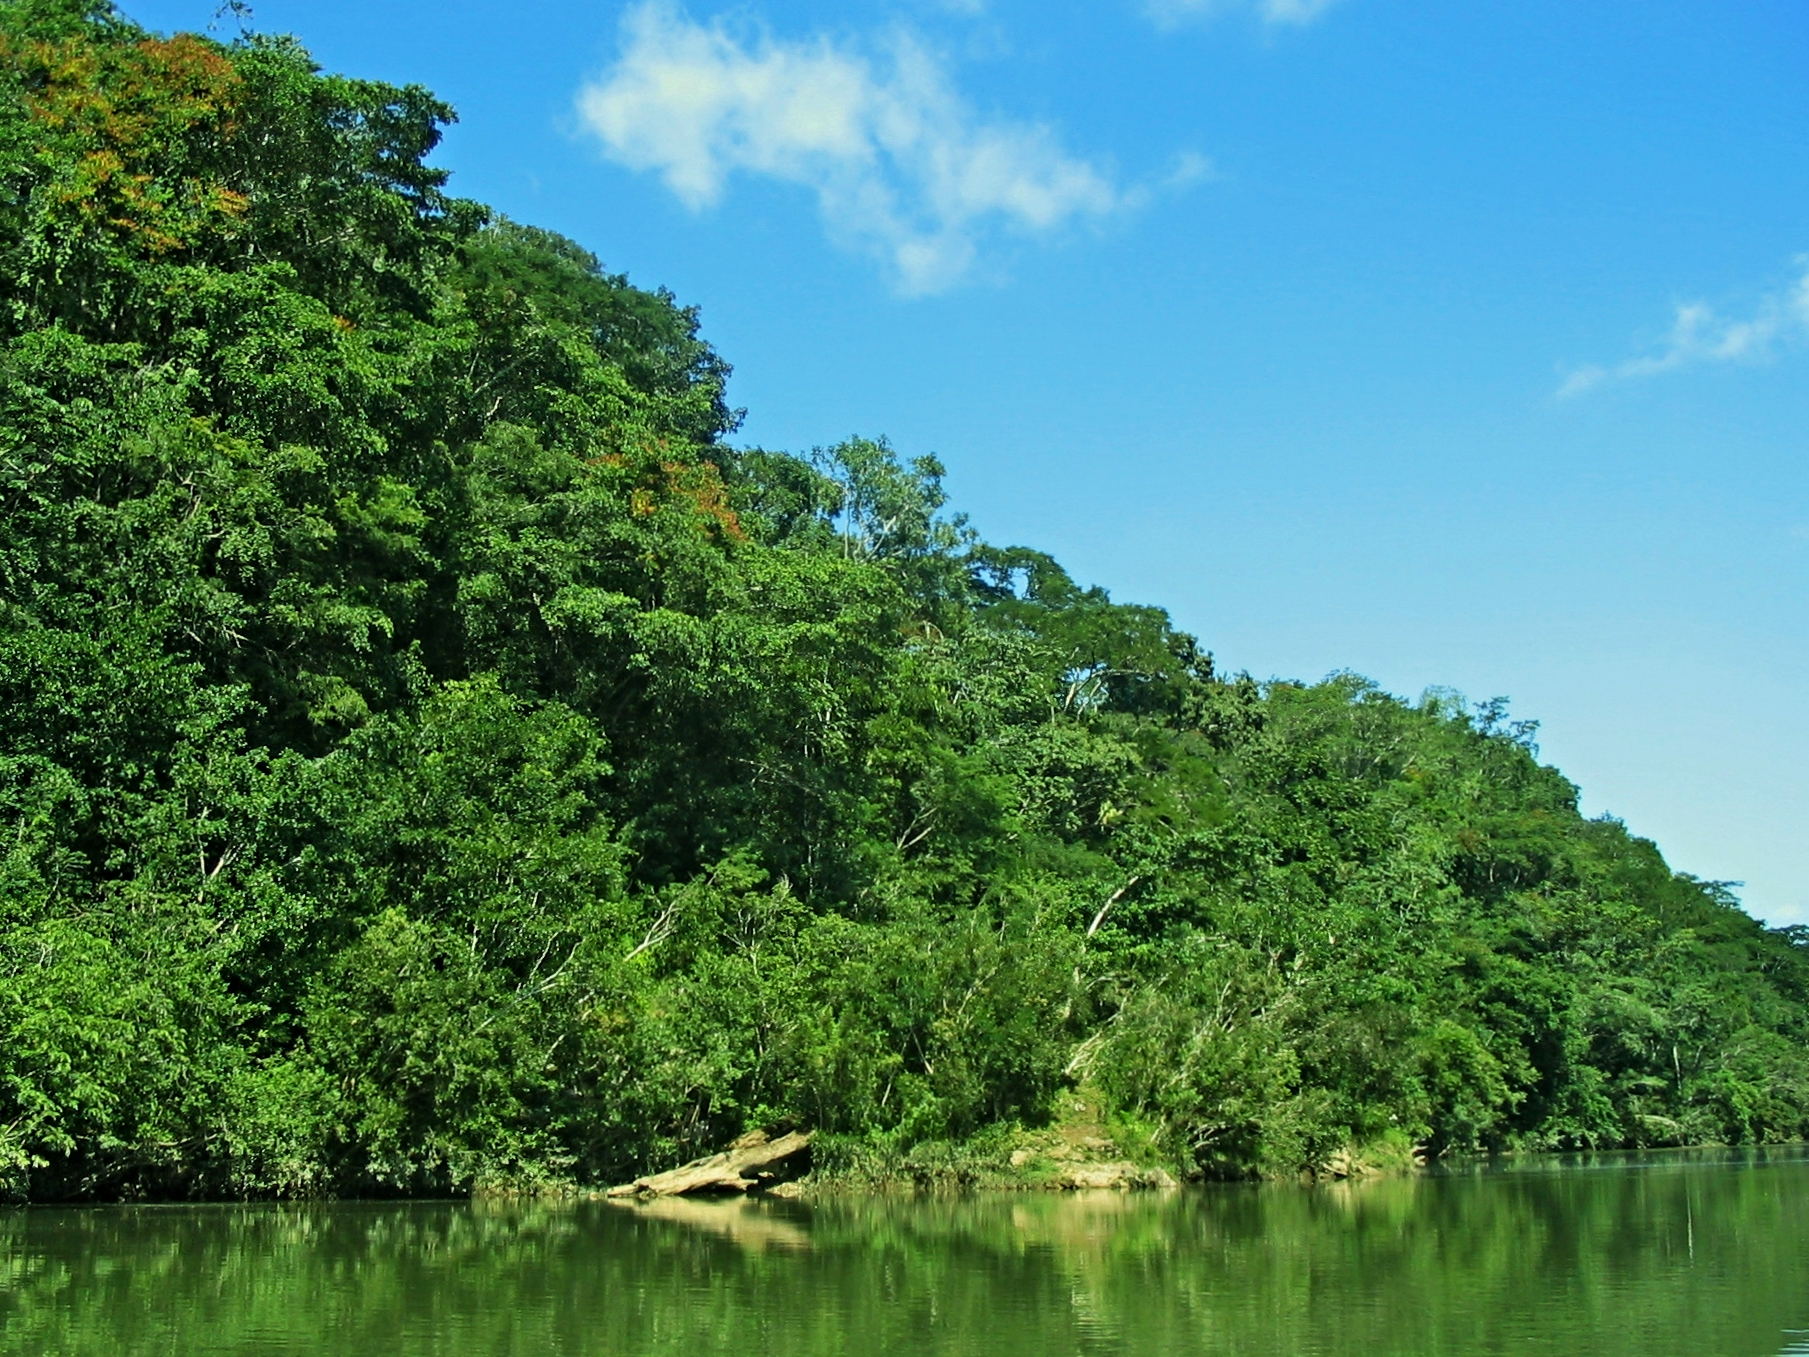 Macal River - Cayo District Rain-forest - Belize Jungle Vacation - Belize Vacation Packages - SabreWing Travel